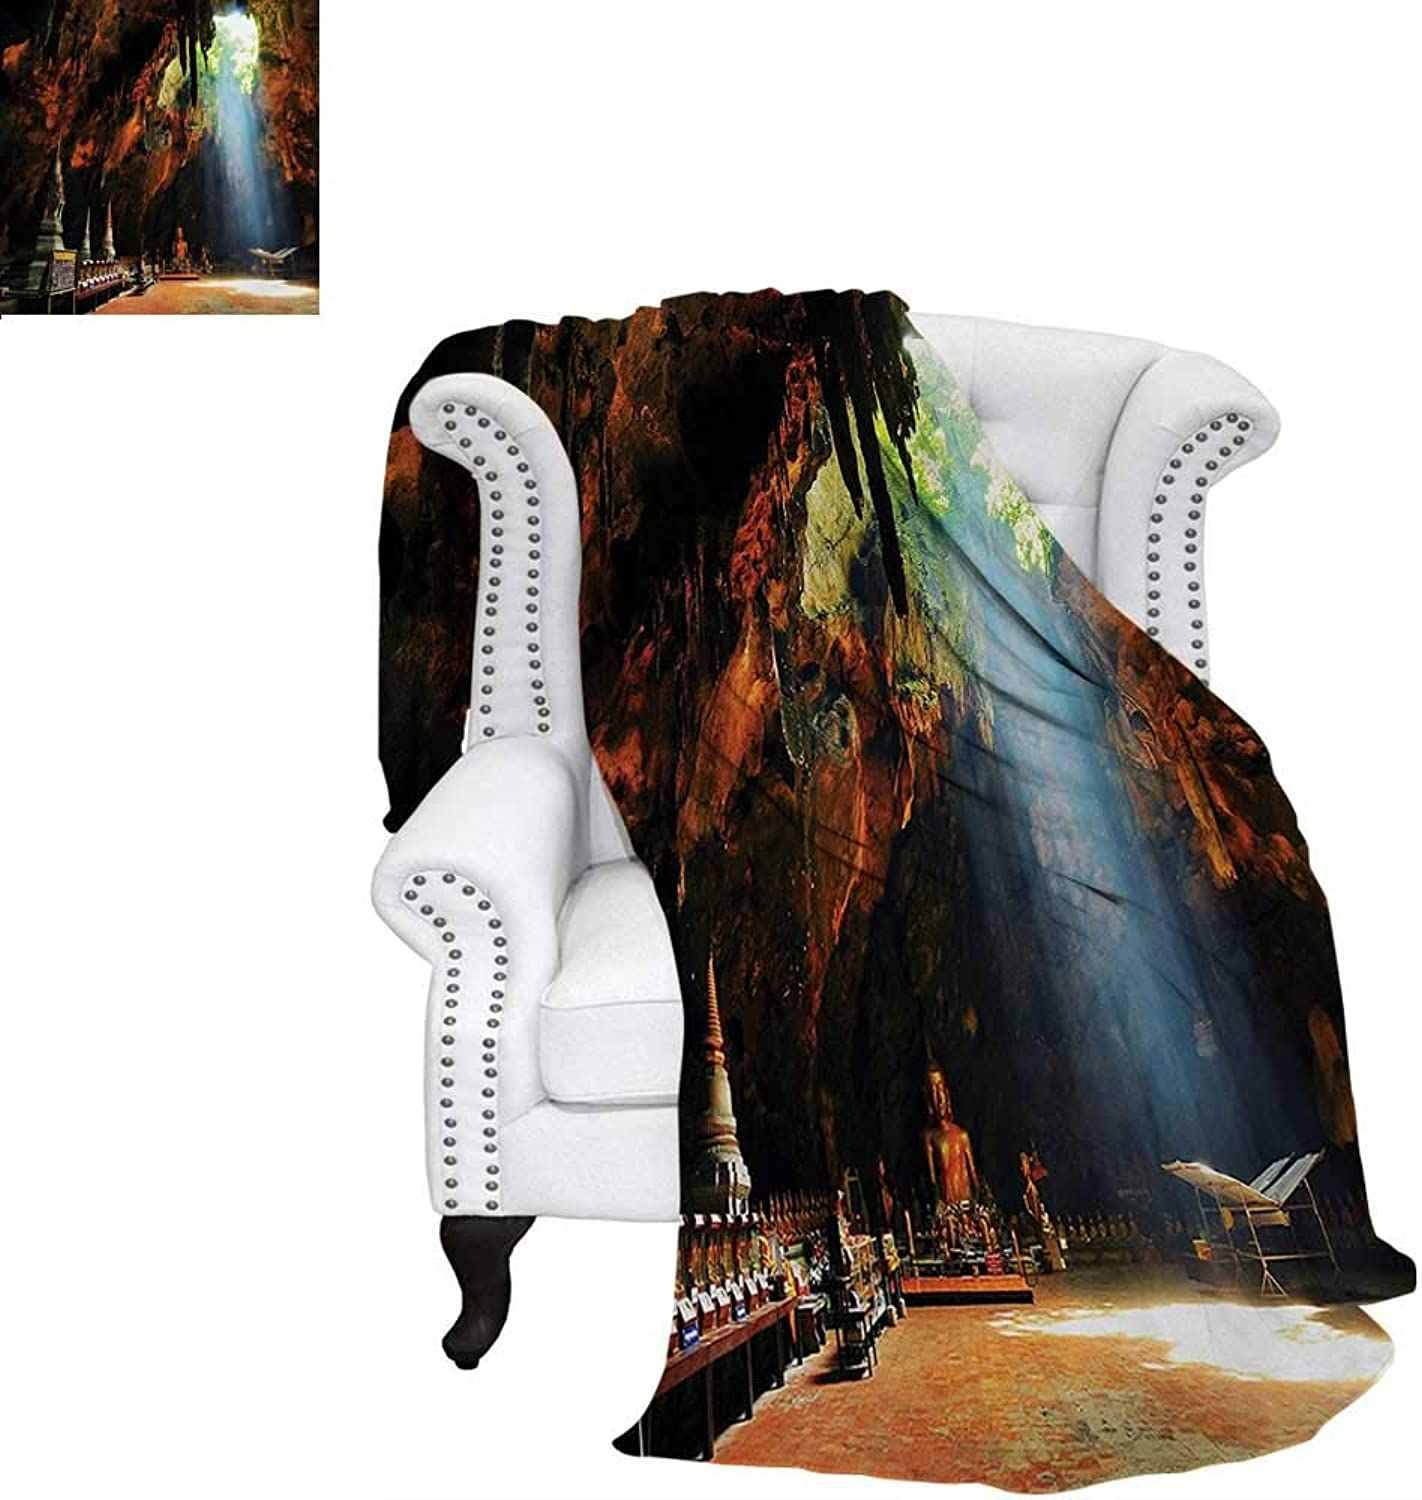 Warmfamily Natural Cave Summer Quilt Comforter Sunbeam in Religious Cave Temple Tham Khao Luang Near Phetchaburi Thailand Digital Printing Blanket 60 x50  Multicolor